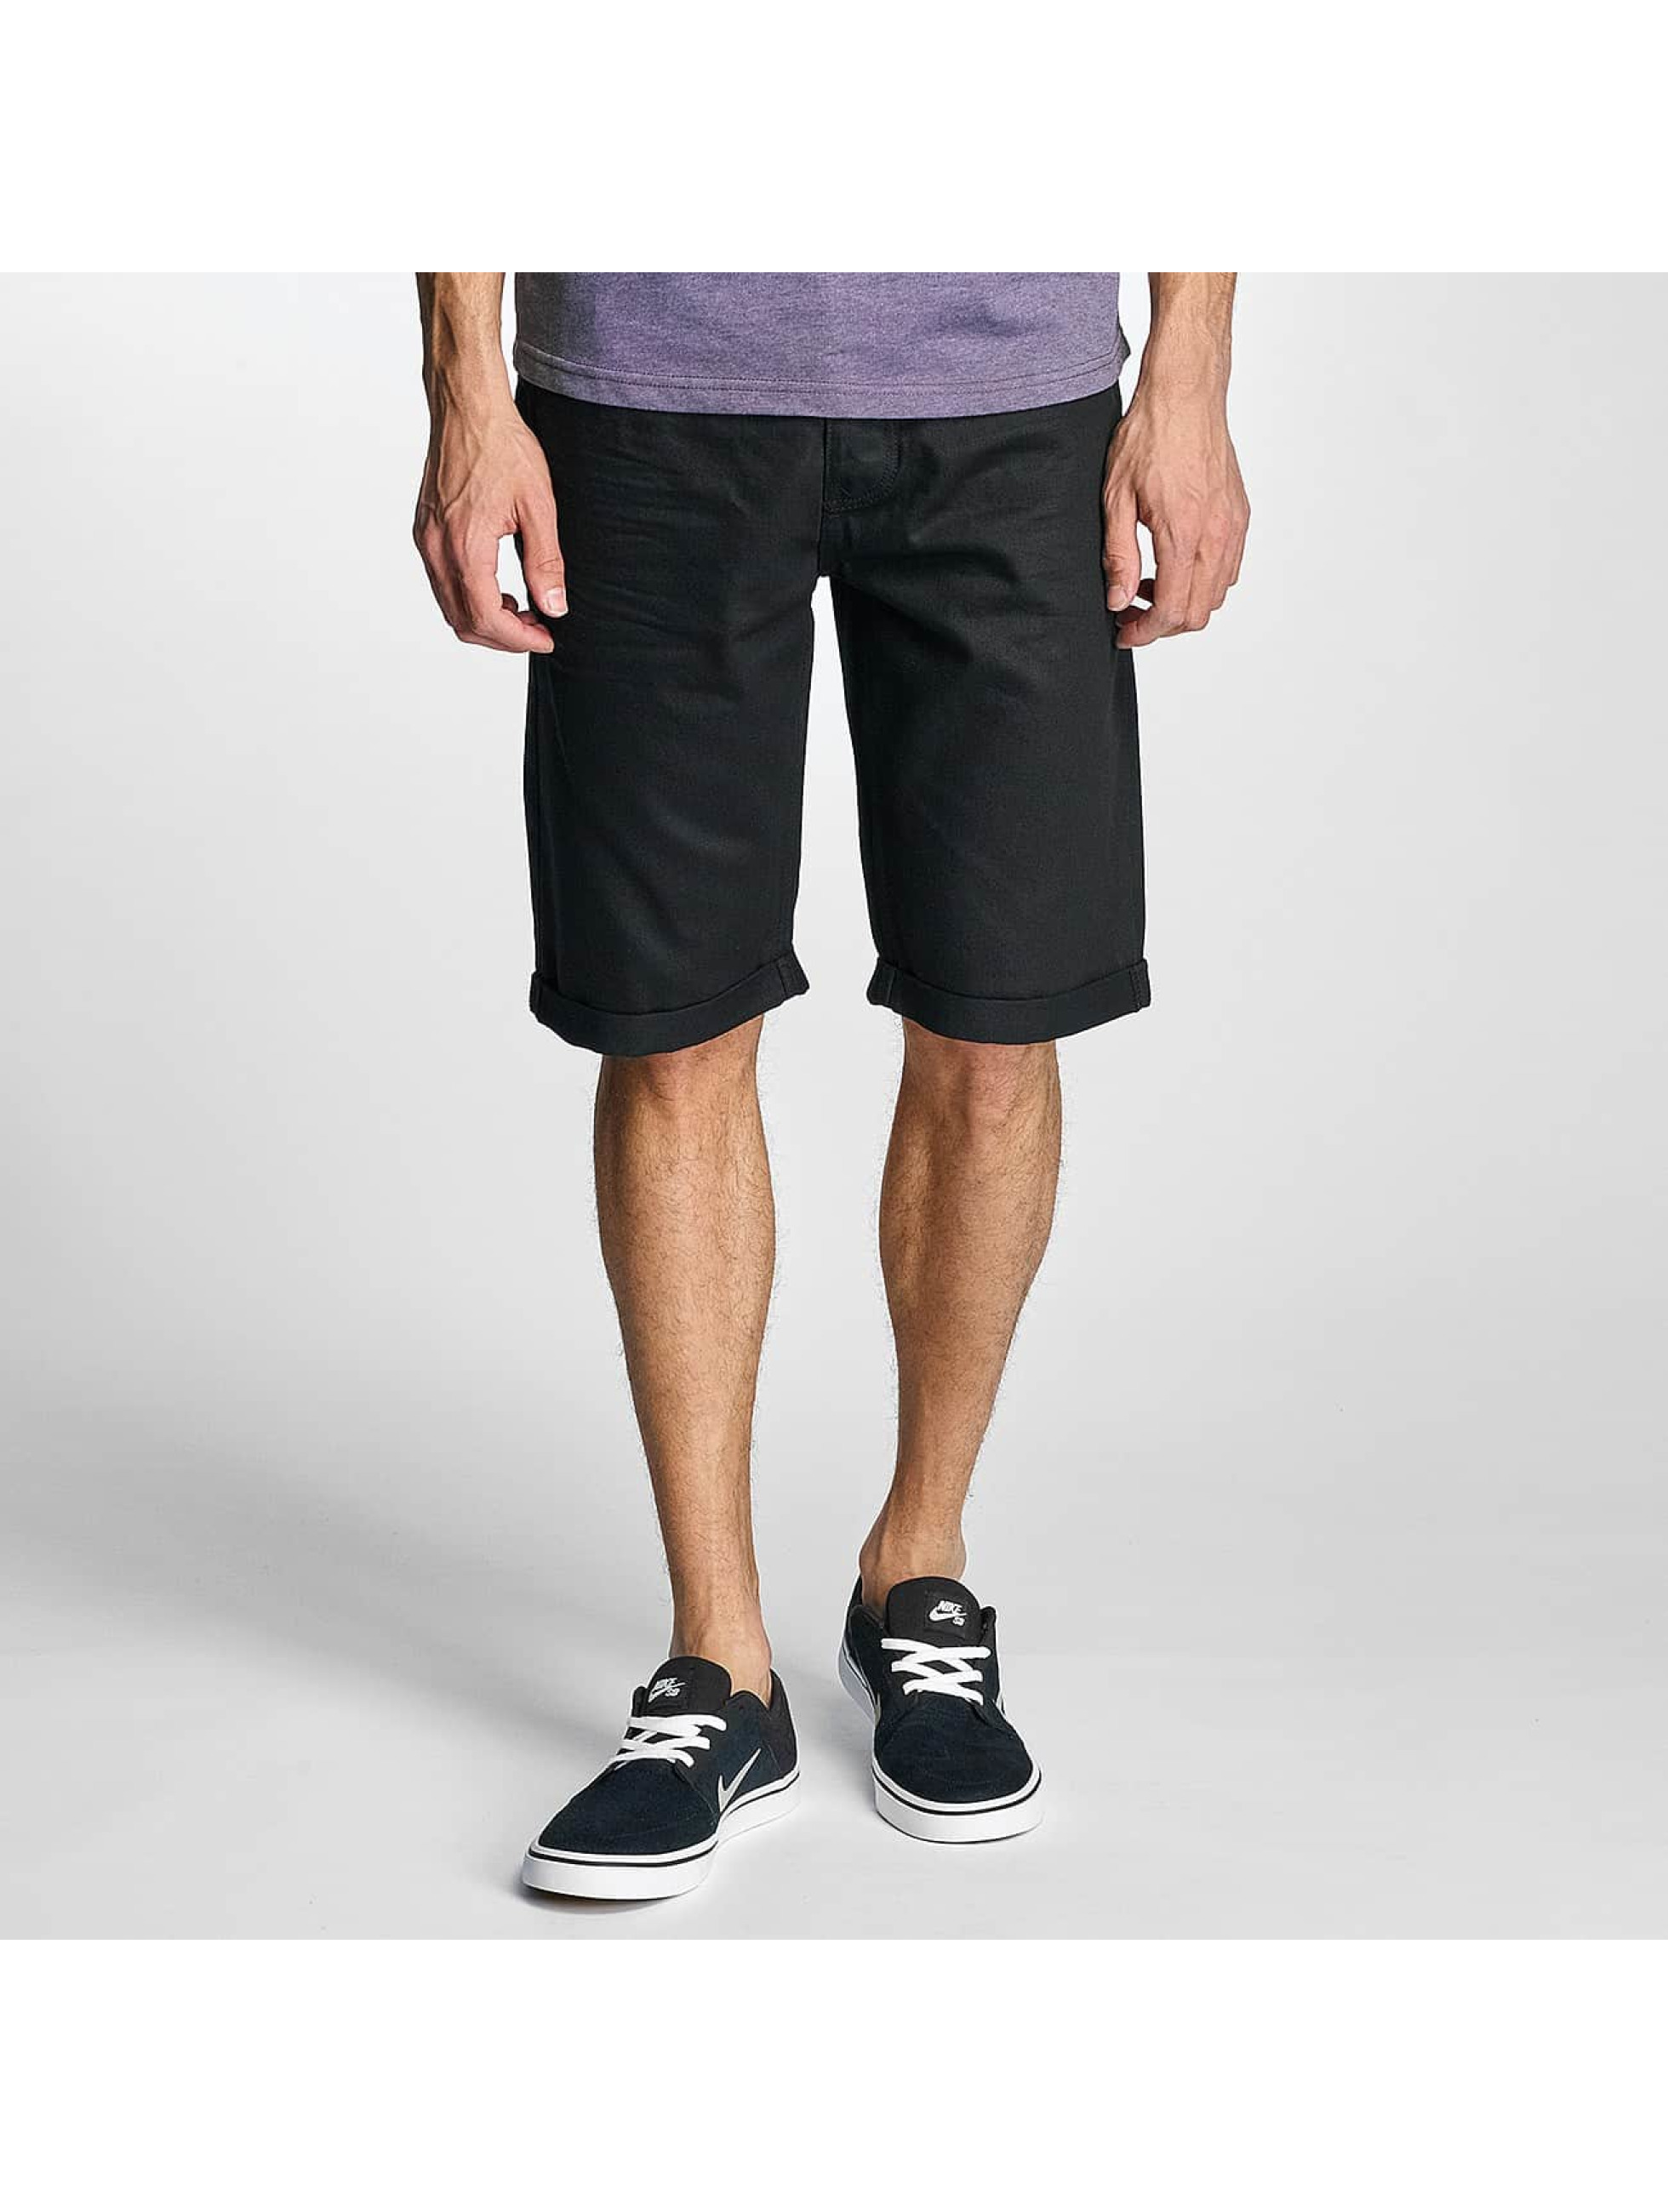 Just Rhyse / Short Dakar in black M